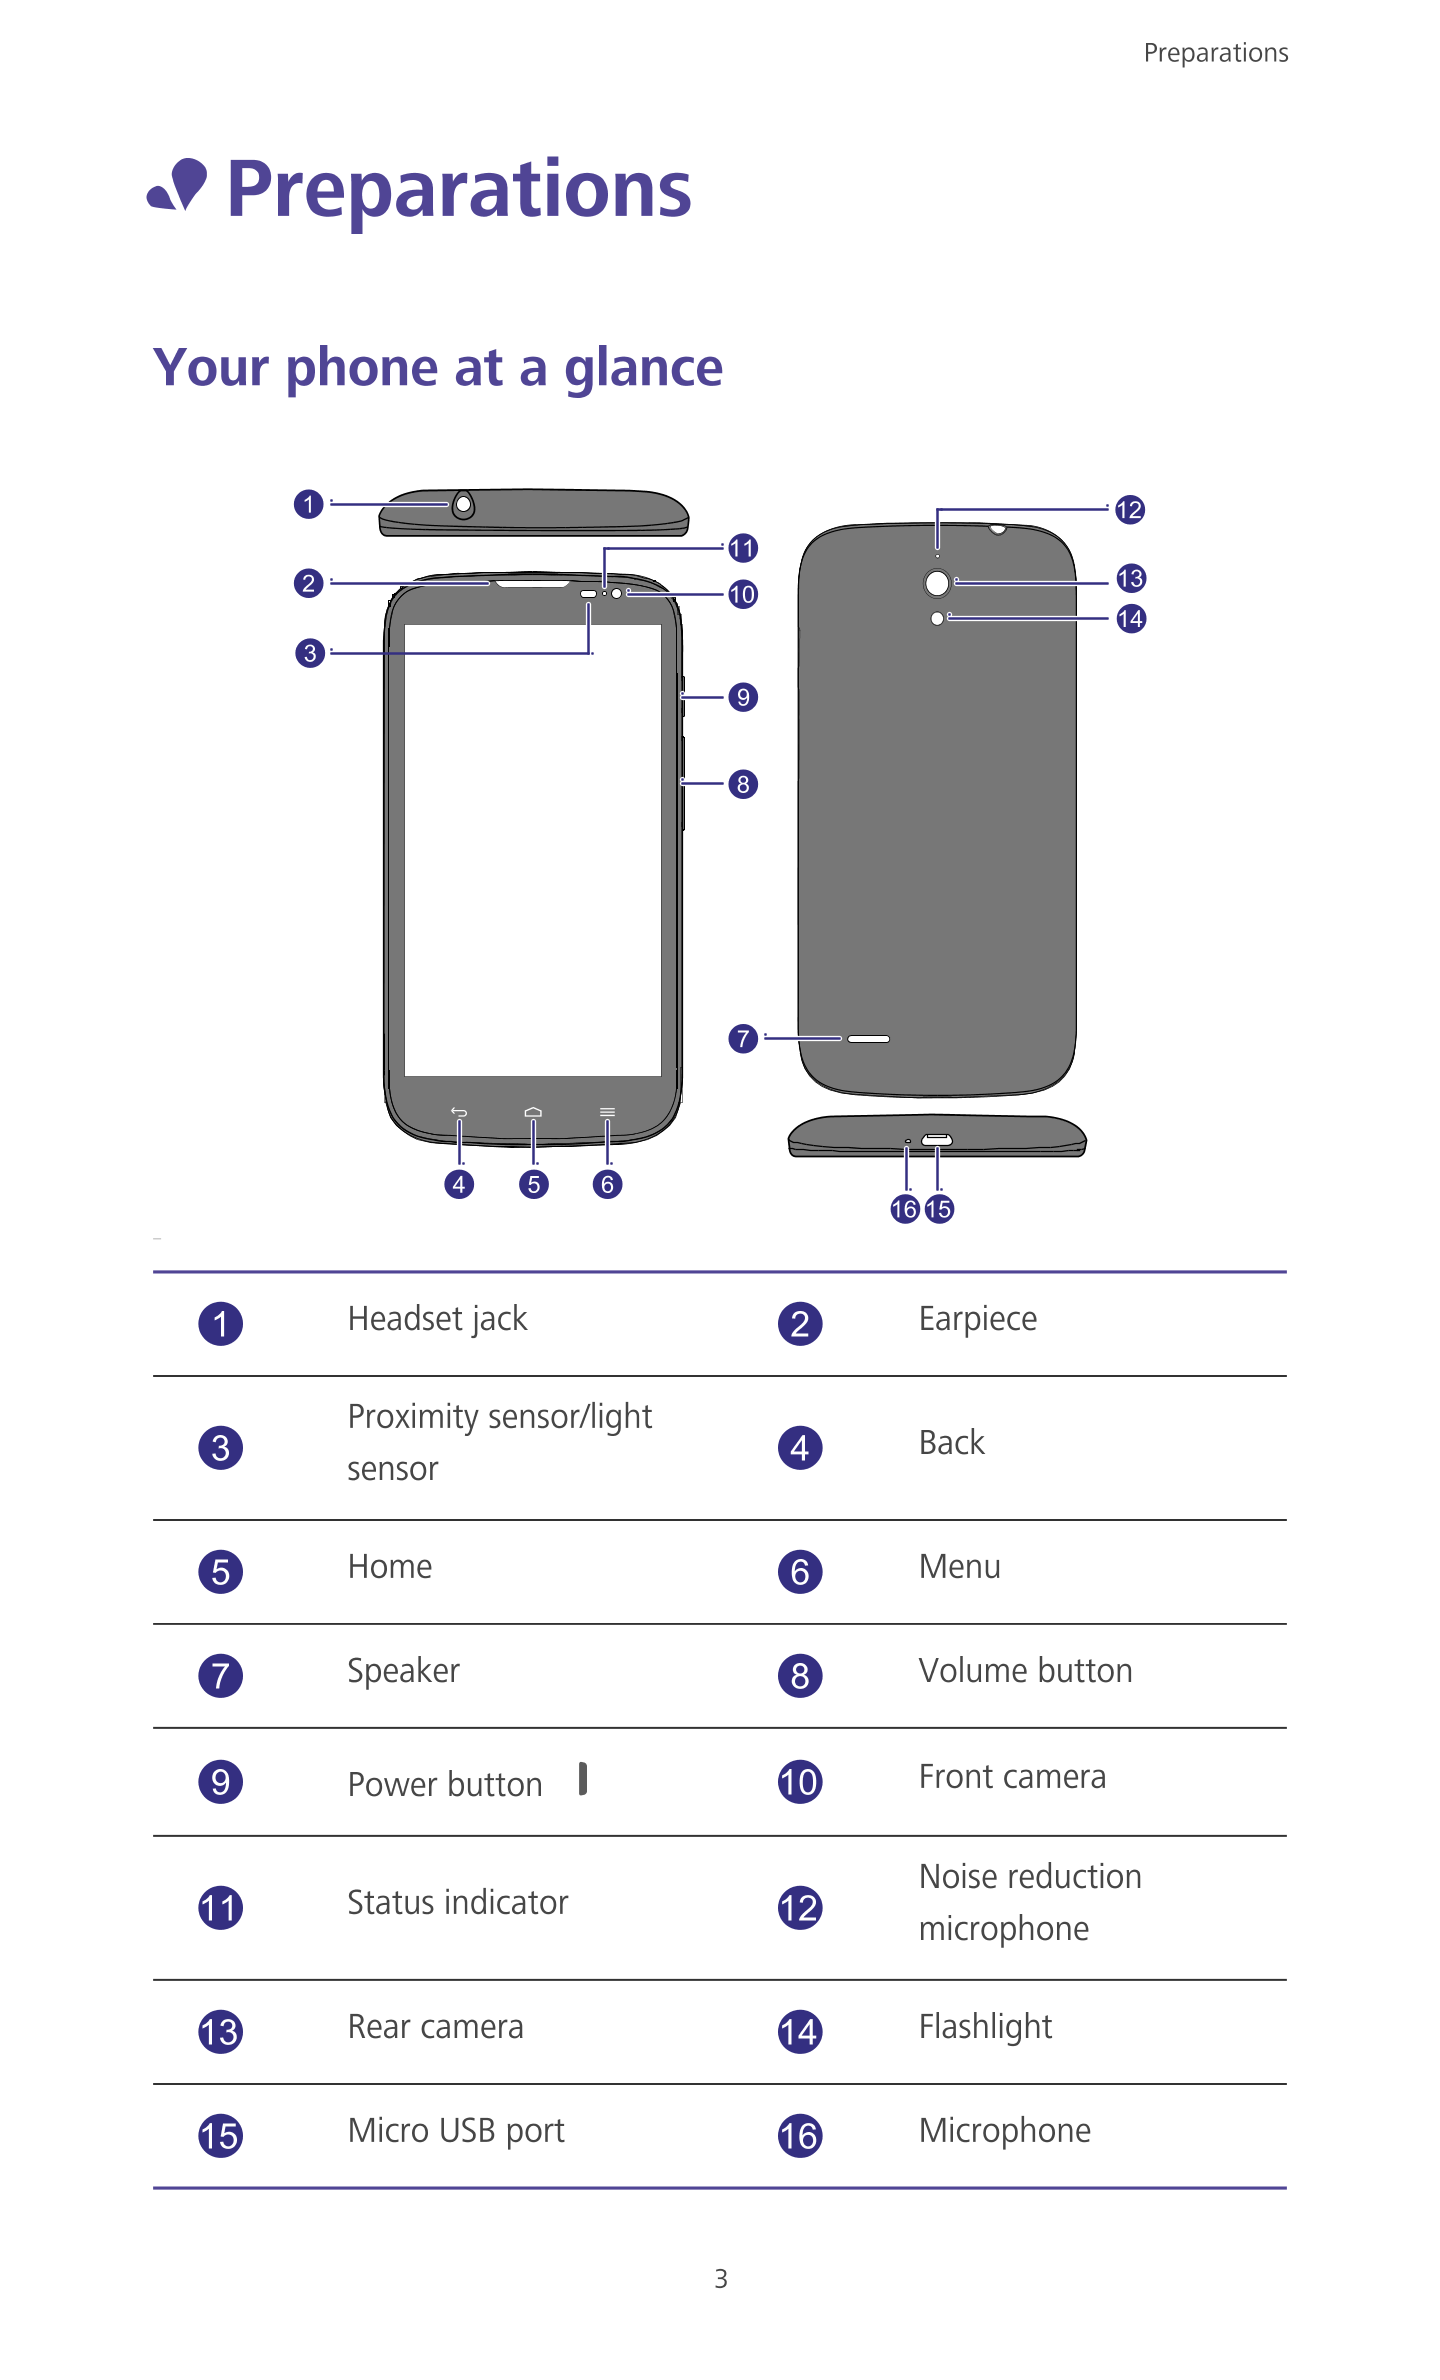 User manual for Huawei Ascend G610. Preparations • Preparations Your phone  at a glance 1 12 11 2 13 10 14 3